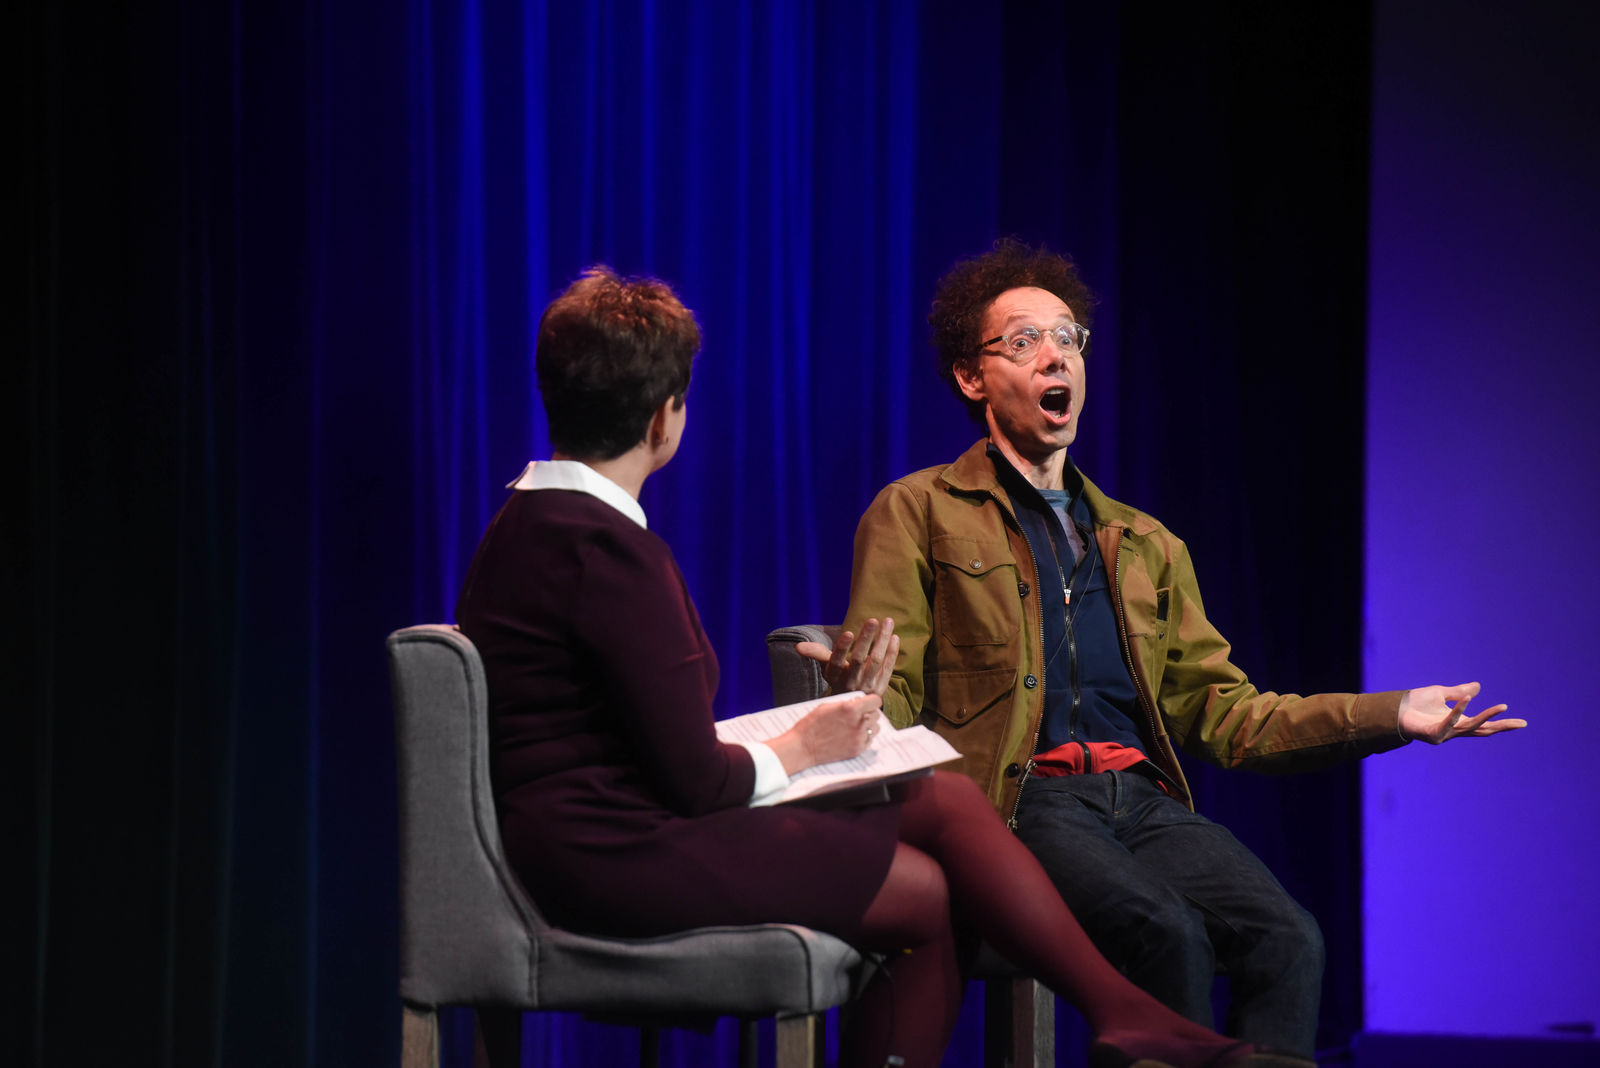 Malcolm Gladwell is interviewed by Demetria Kalodimos at the Fall Leadership Breakfast at Belmont University in Nashville, Tennessee, October 22, 2019. Photos: Belmont University.